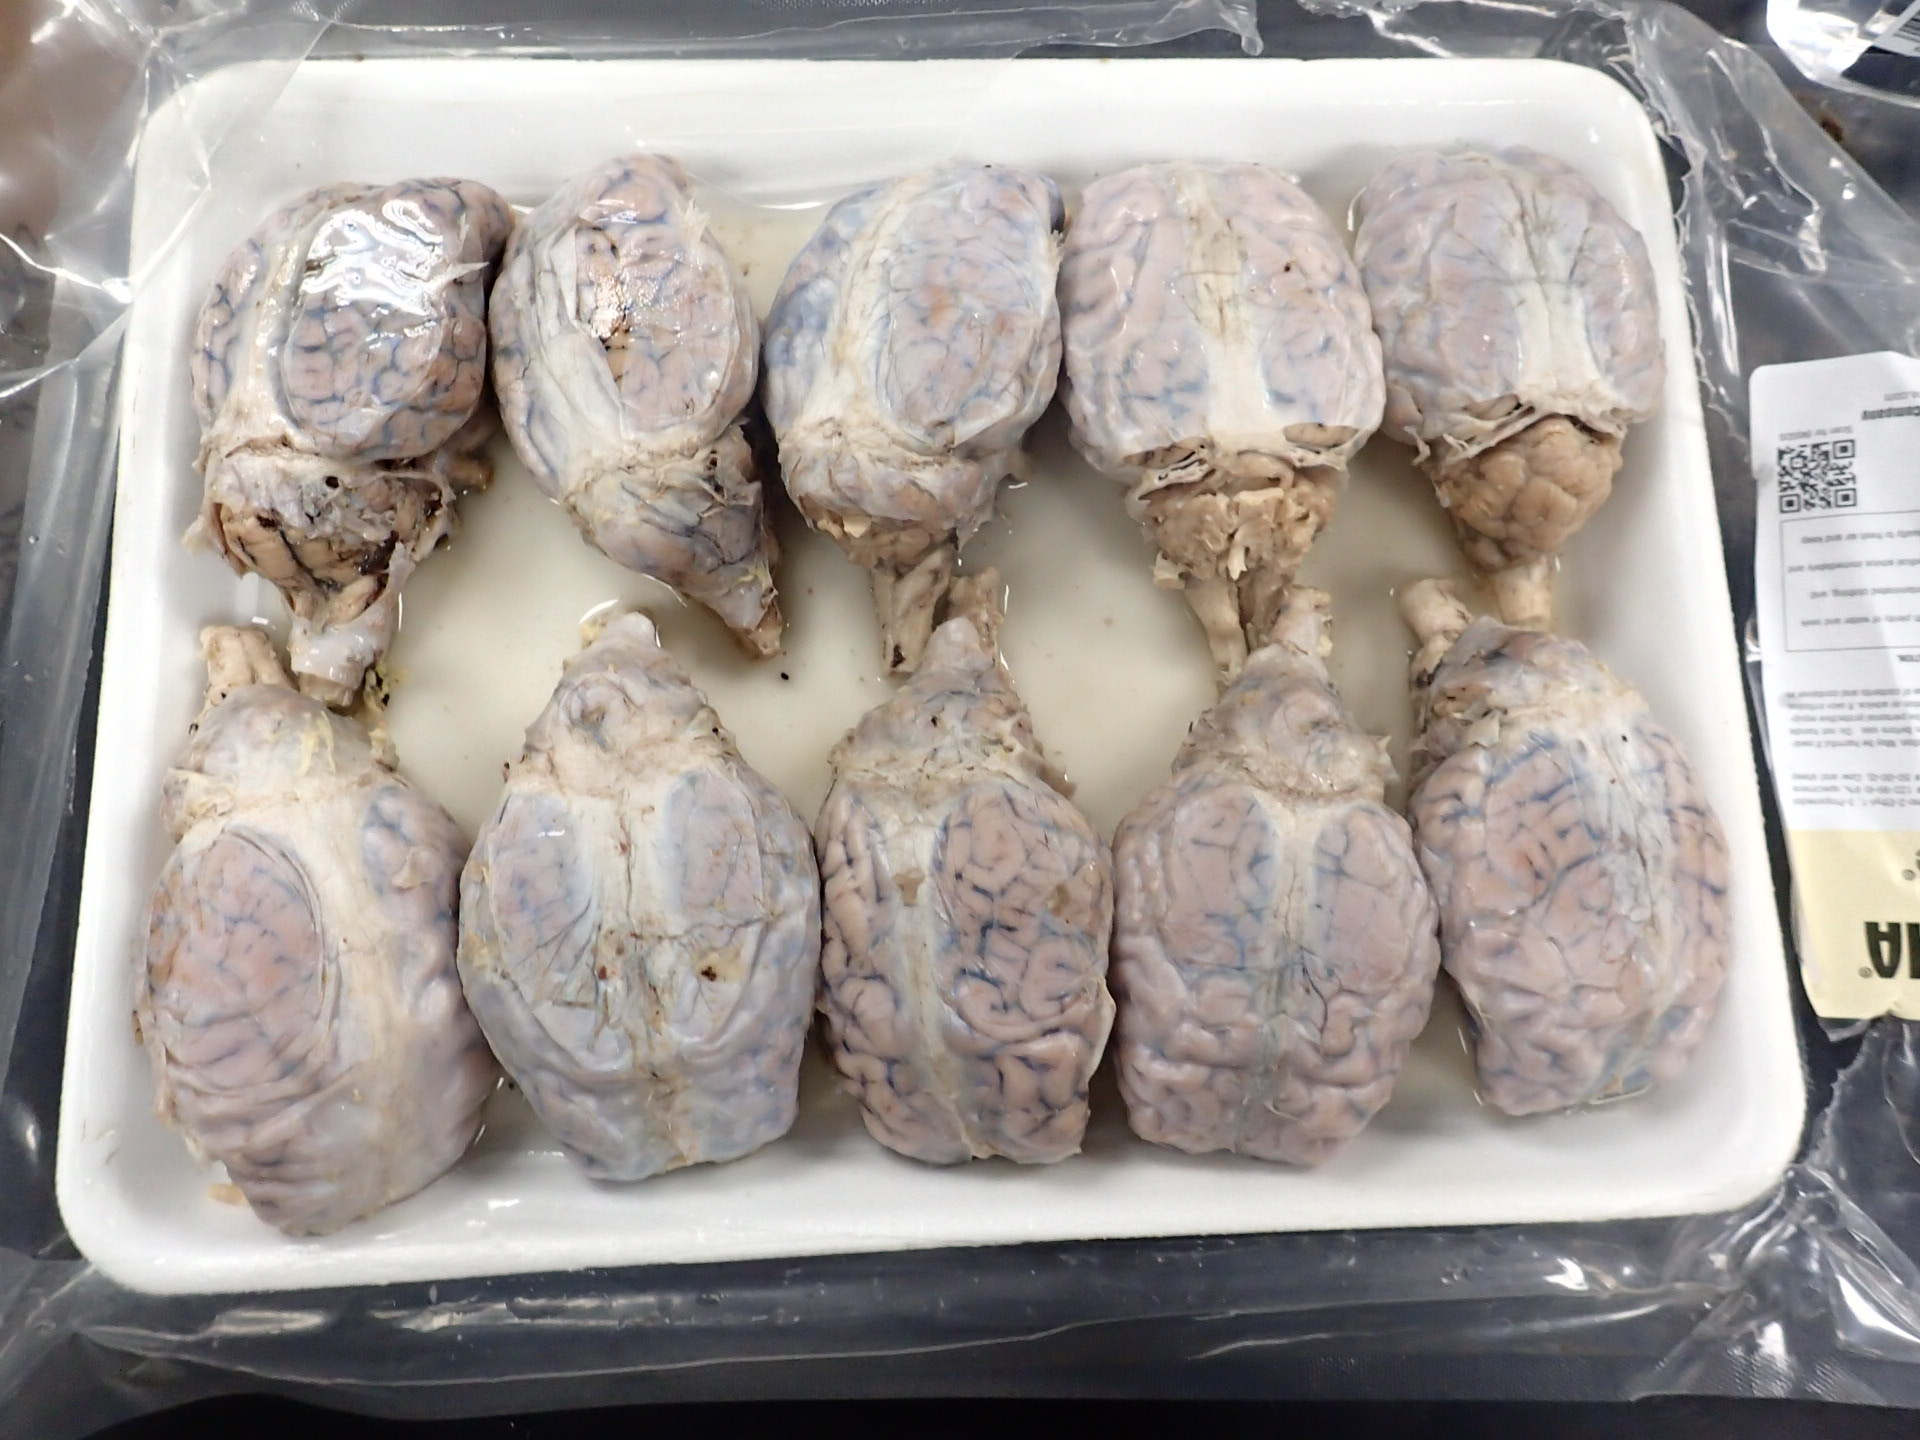 Packaged Brains